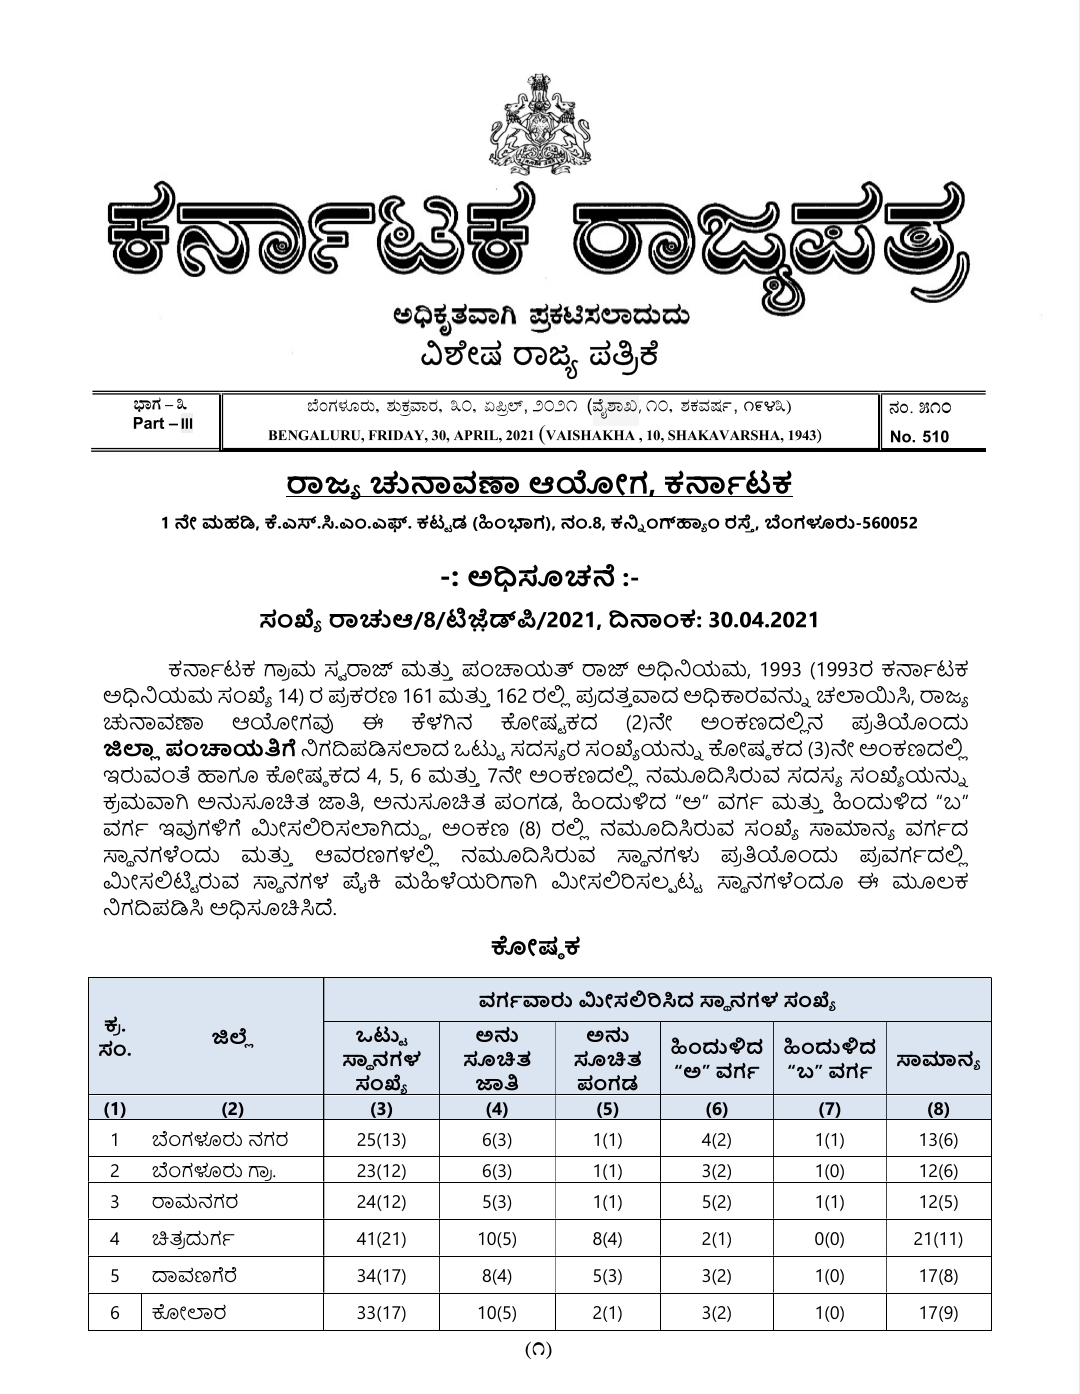 Number of seats reserved for District Panchayat